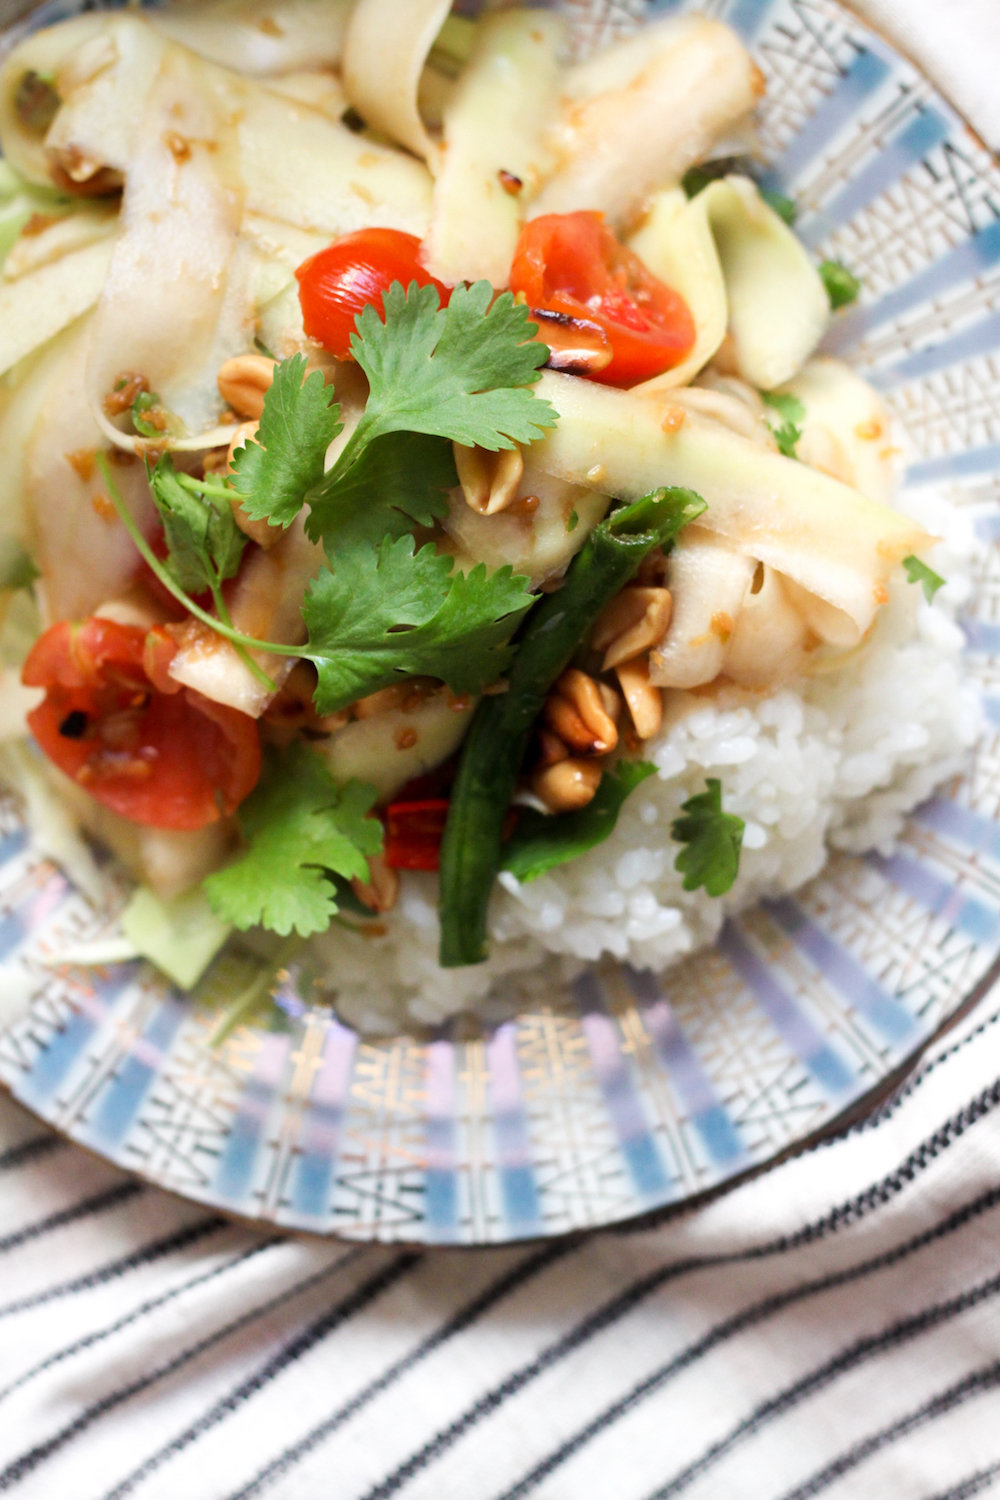 Thai Green Papaya Salad - Som Tum (Eat Me. Drink Me.)